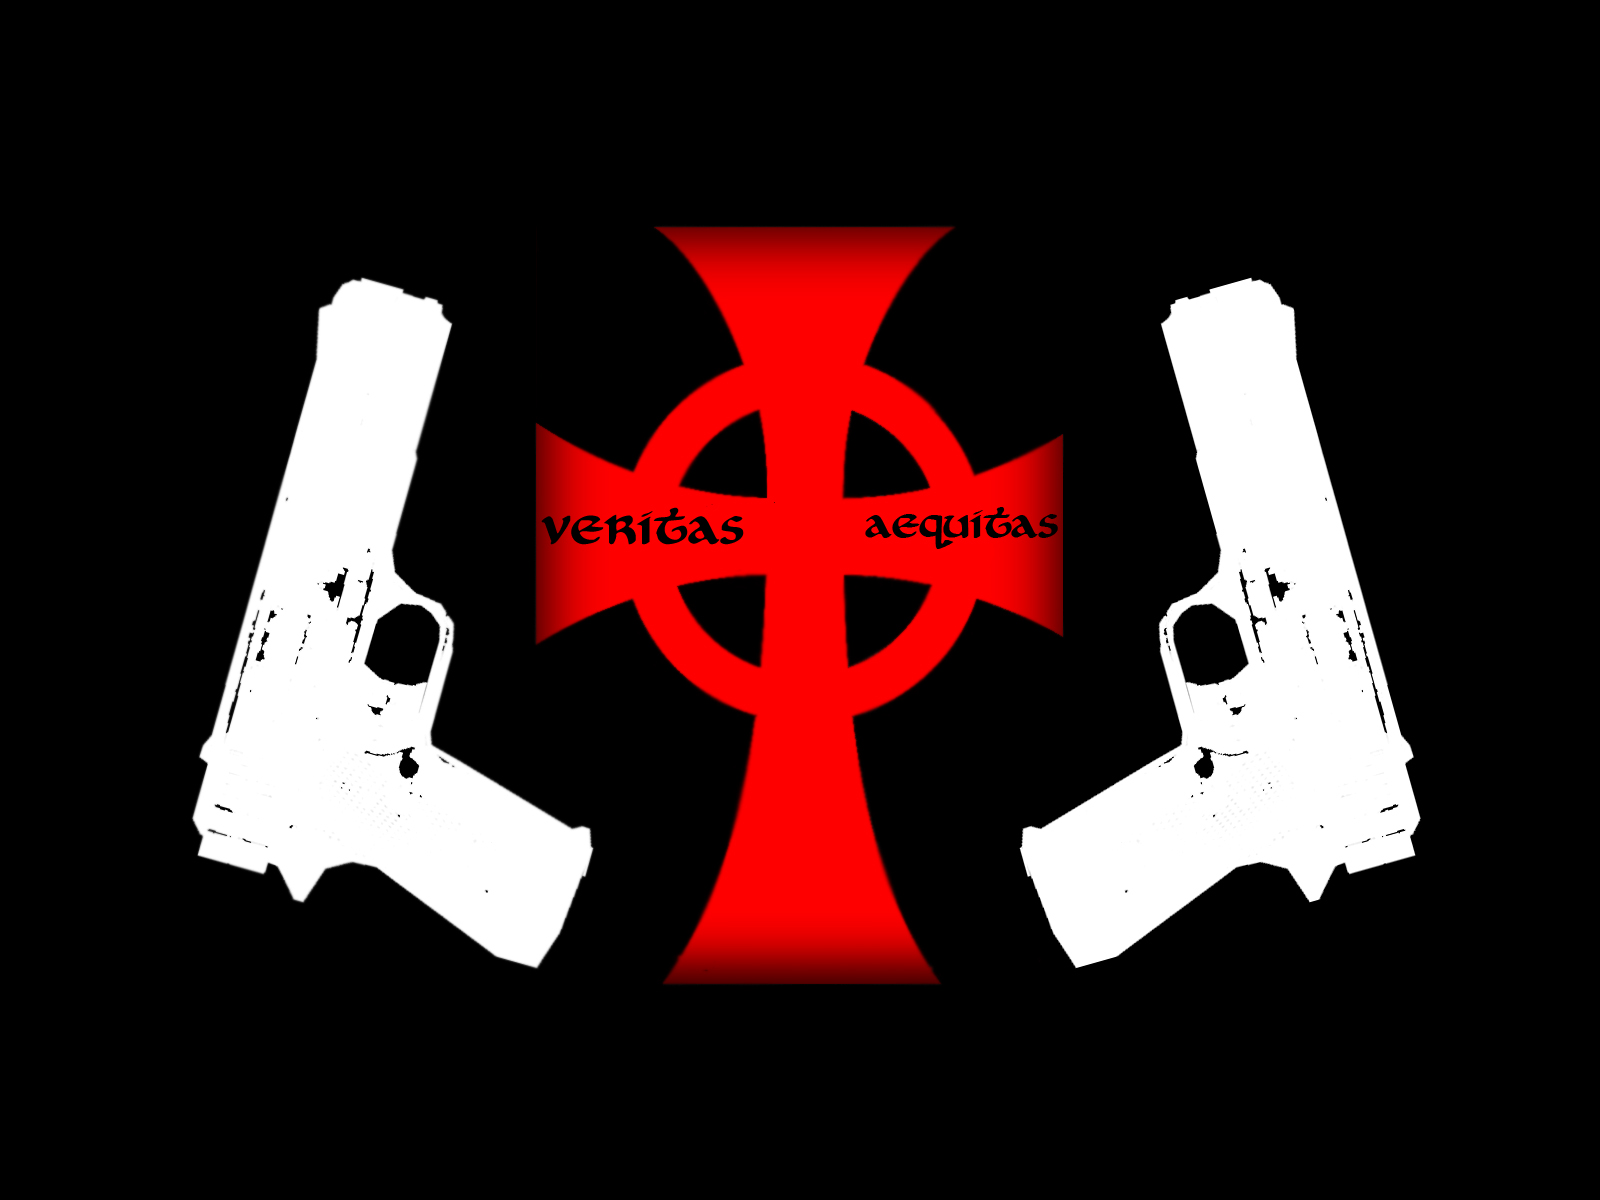 the boondock saints Improve your space fast with boondock saints posters and prints you love simply discover the perfect boondock saints posters, prints, photos and more for your room or home today with allposterscom.